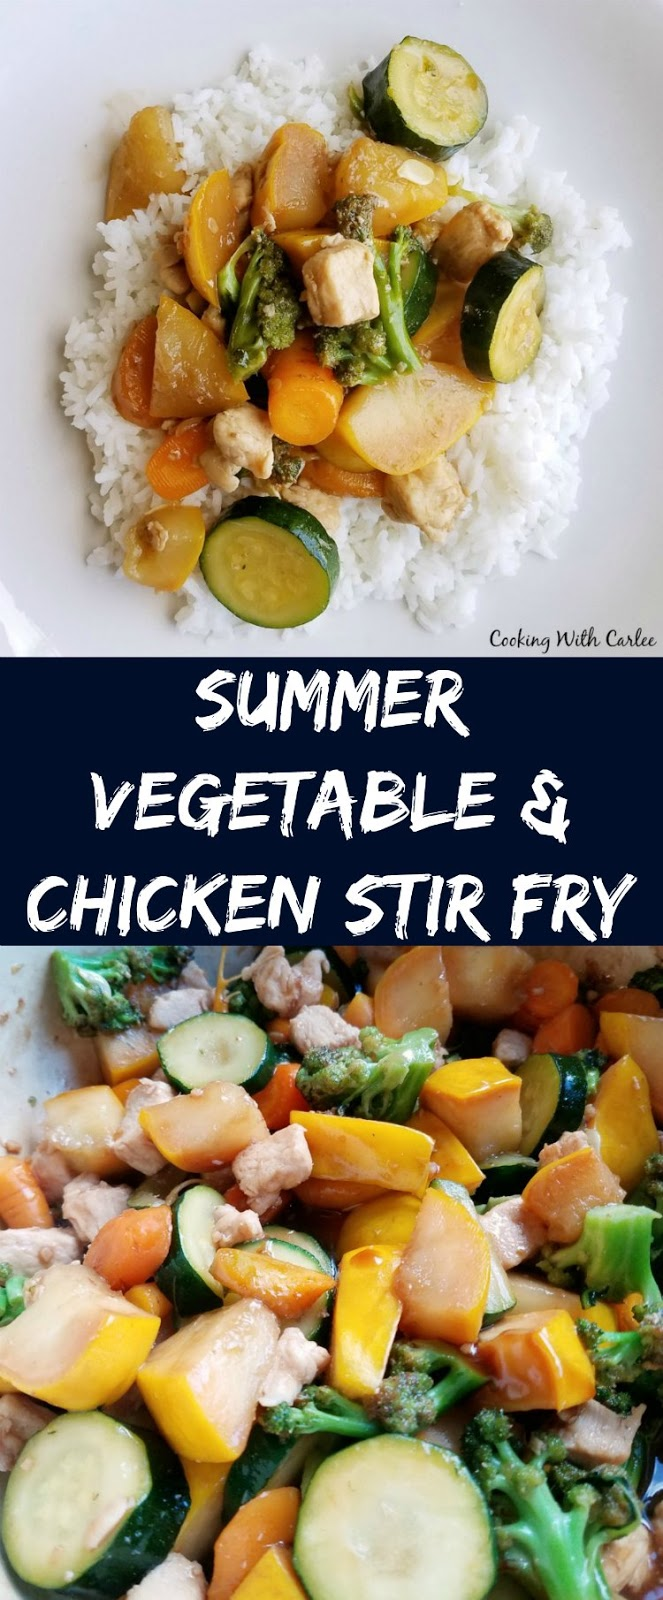 Cooking With Carlee: Summer Vegetable and Chicken Stir Fry ...